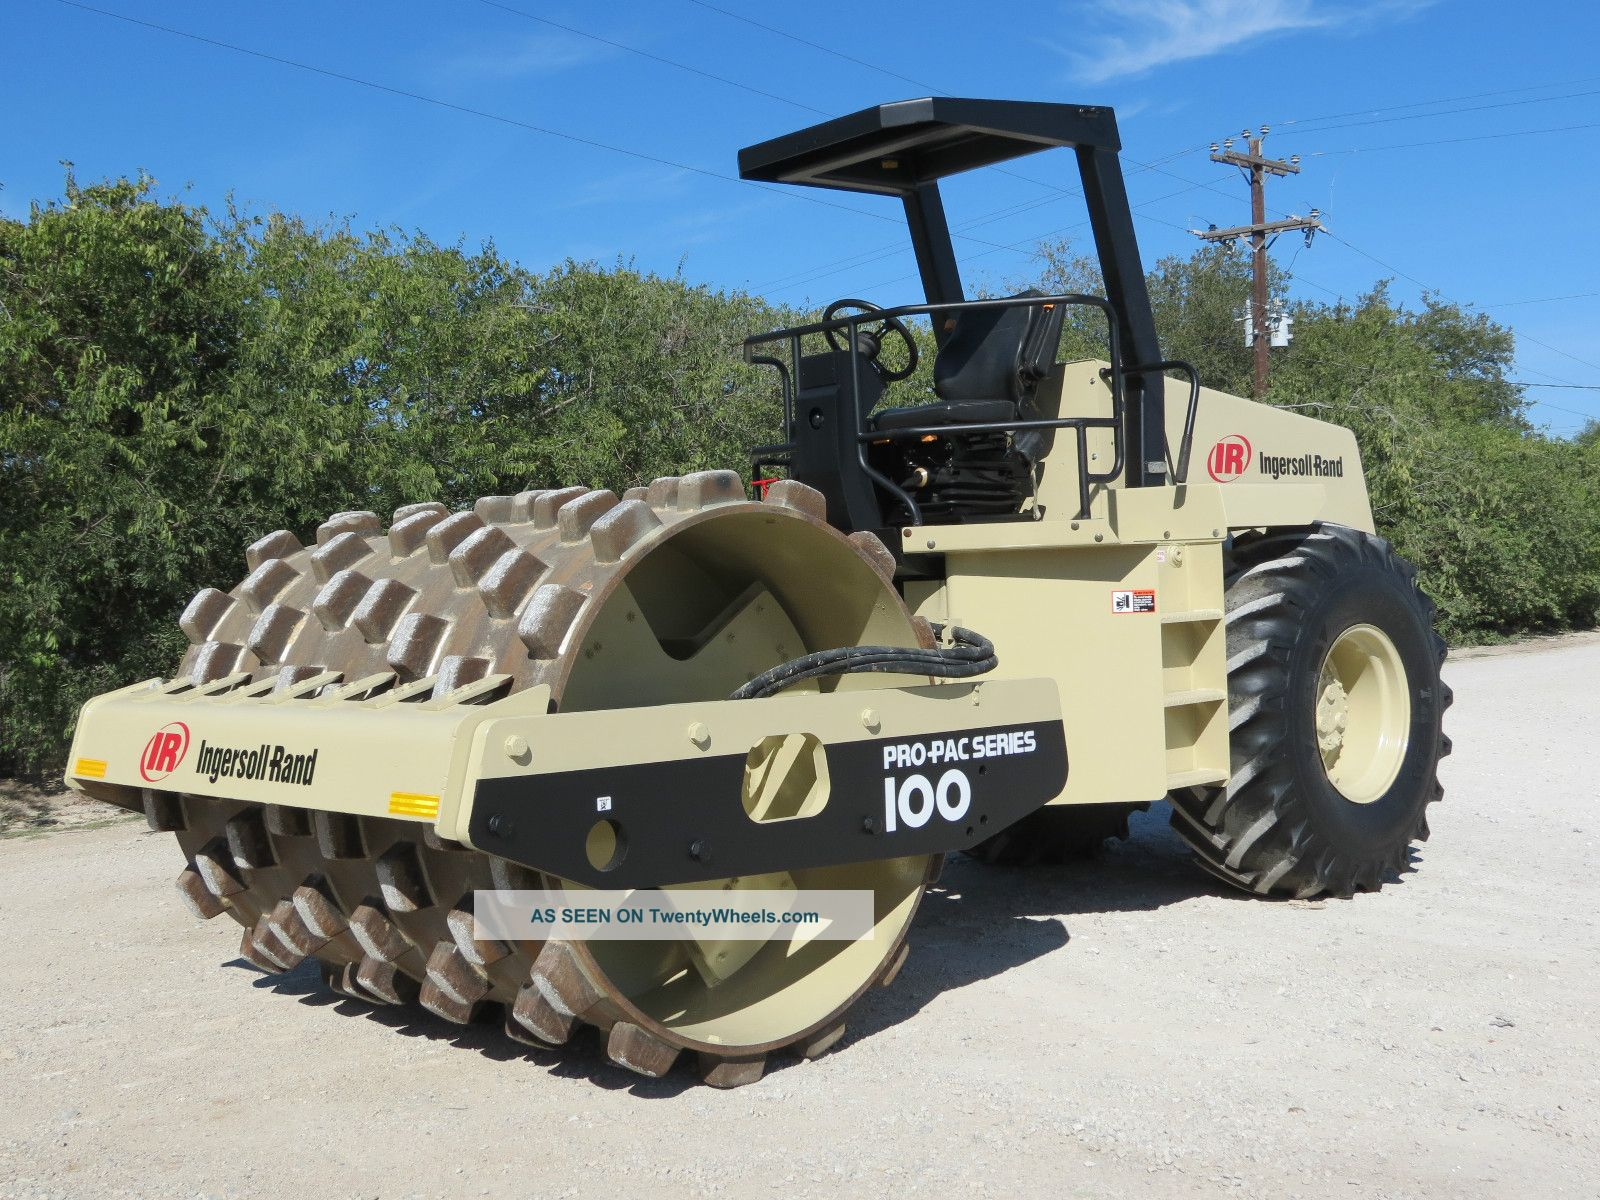 Ingersoll Rand Sd100 F Pro - Pac Series Vibratory Padfoot Compactor Roller Dfw Tx Compactors & Rollers - Riding photo